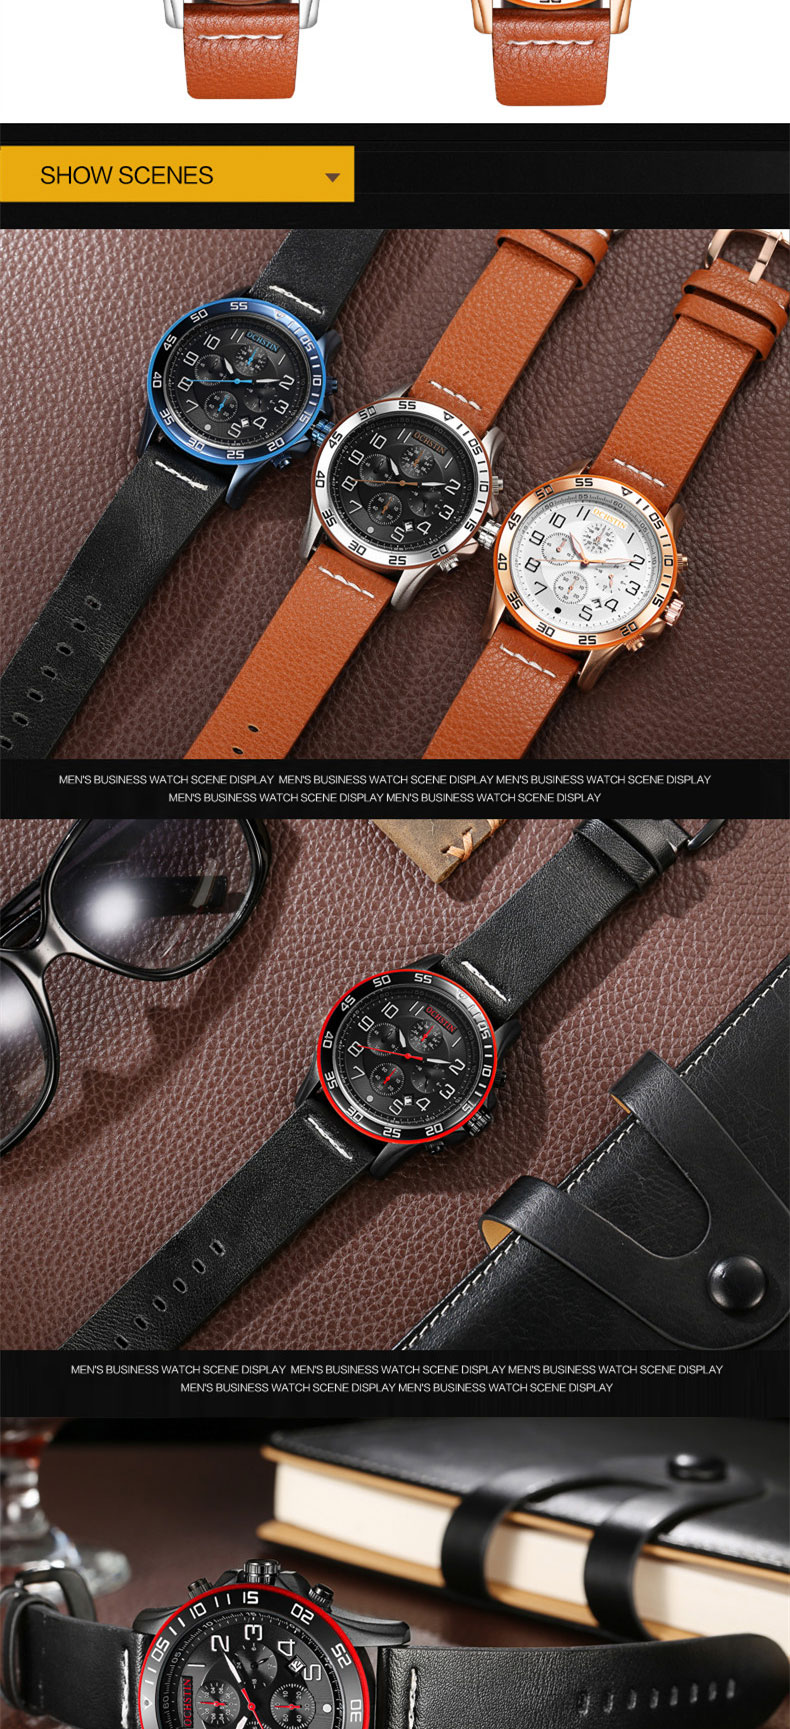 17 Men Watches Luxury Top Brand OCHSTIN Sports Chronograph Fashion Male Dress Leather Belt Clock Waterproof Quartz Wrist Watch 3